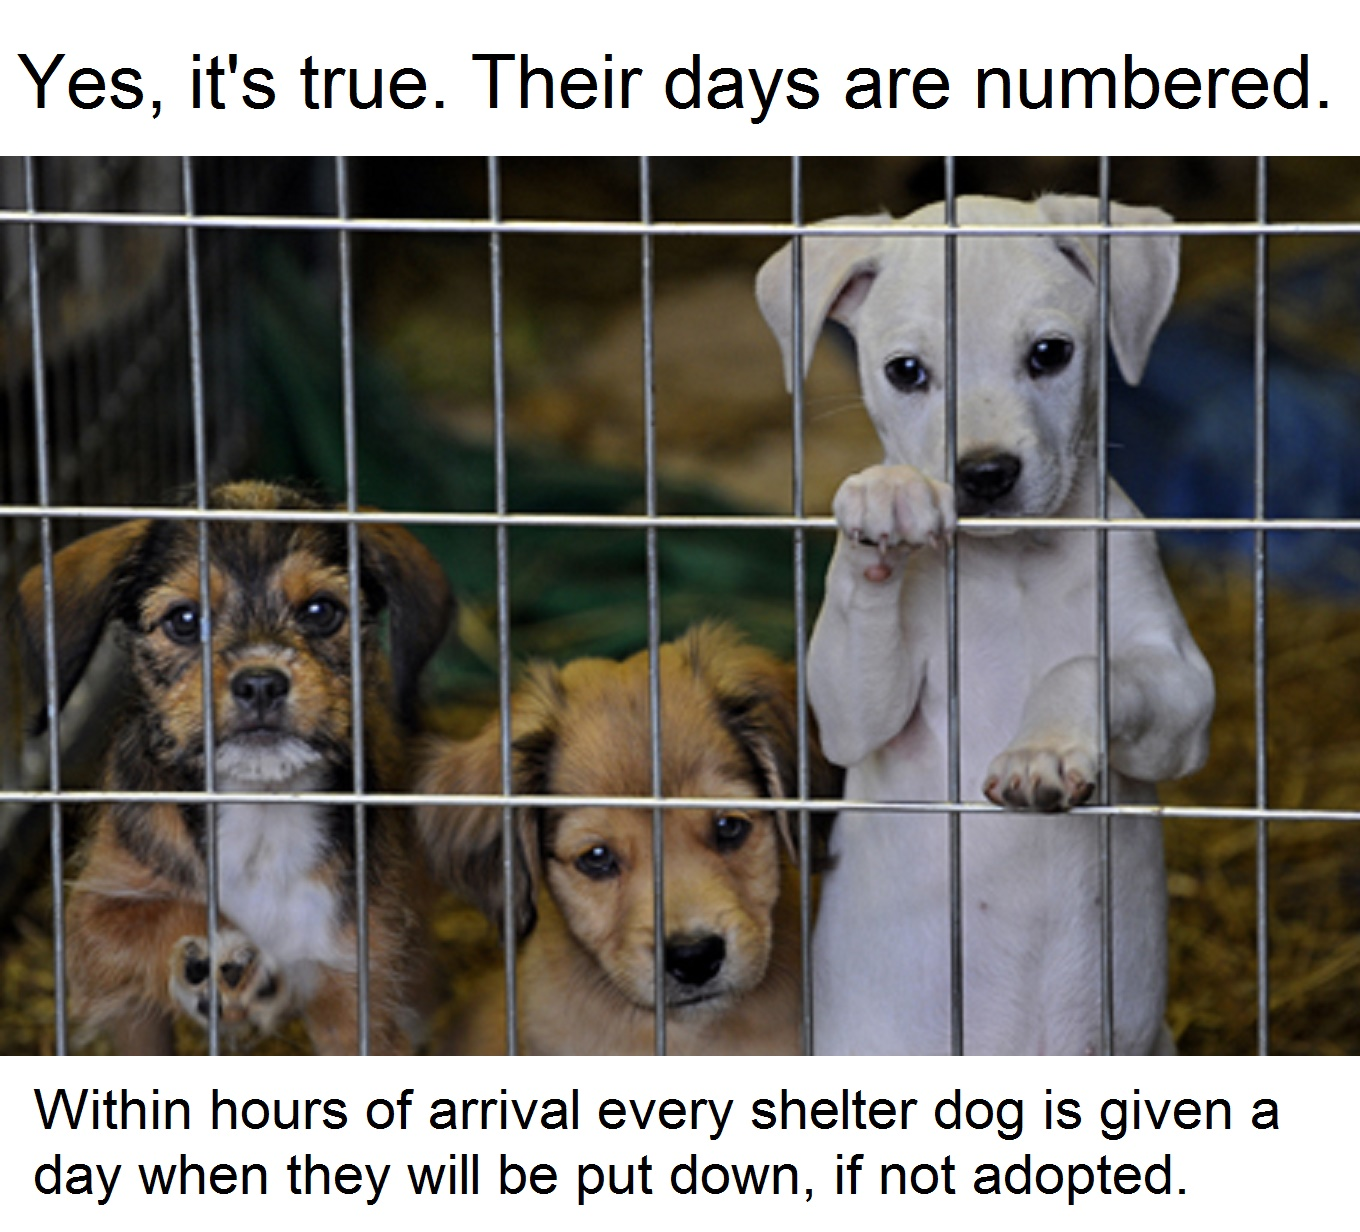 Shelter will have to put down animals if not adopted soon